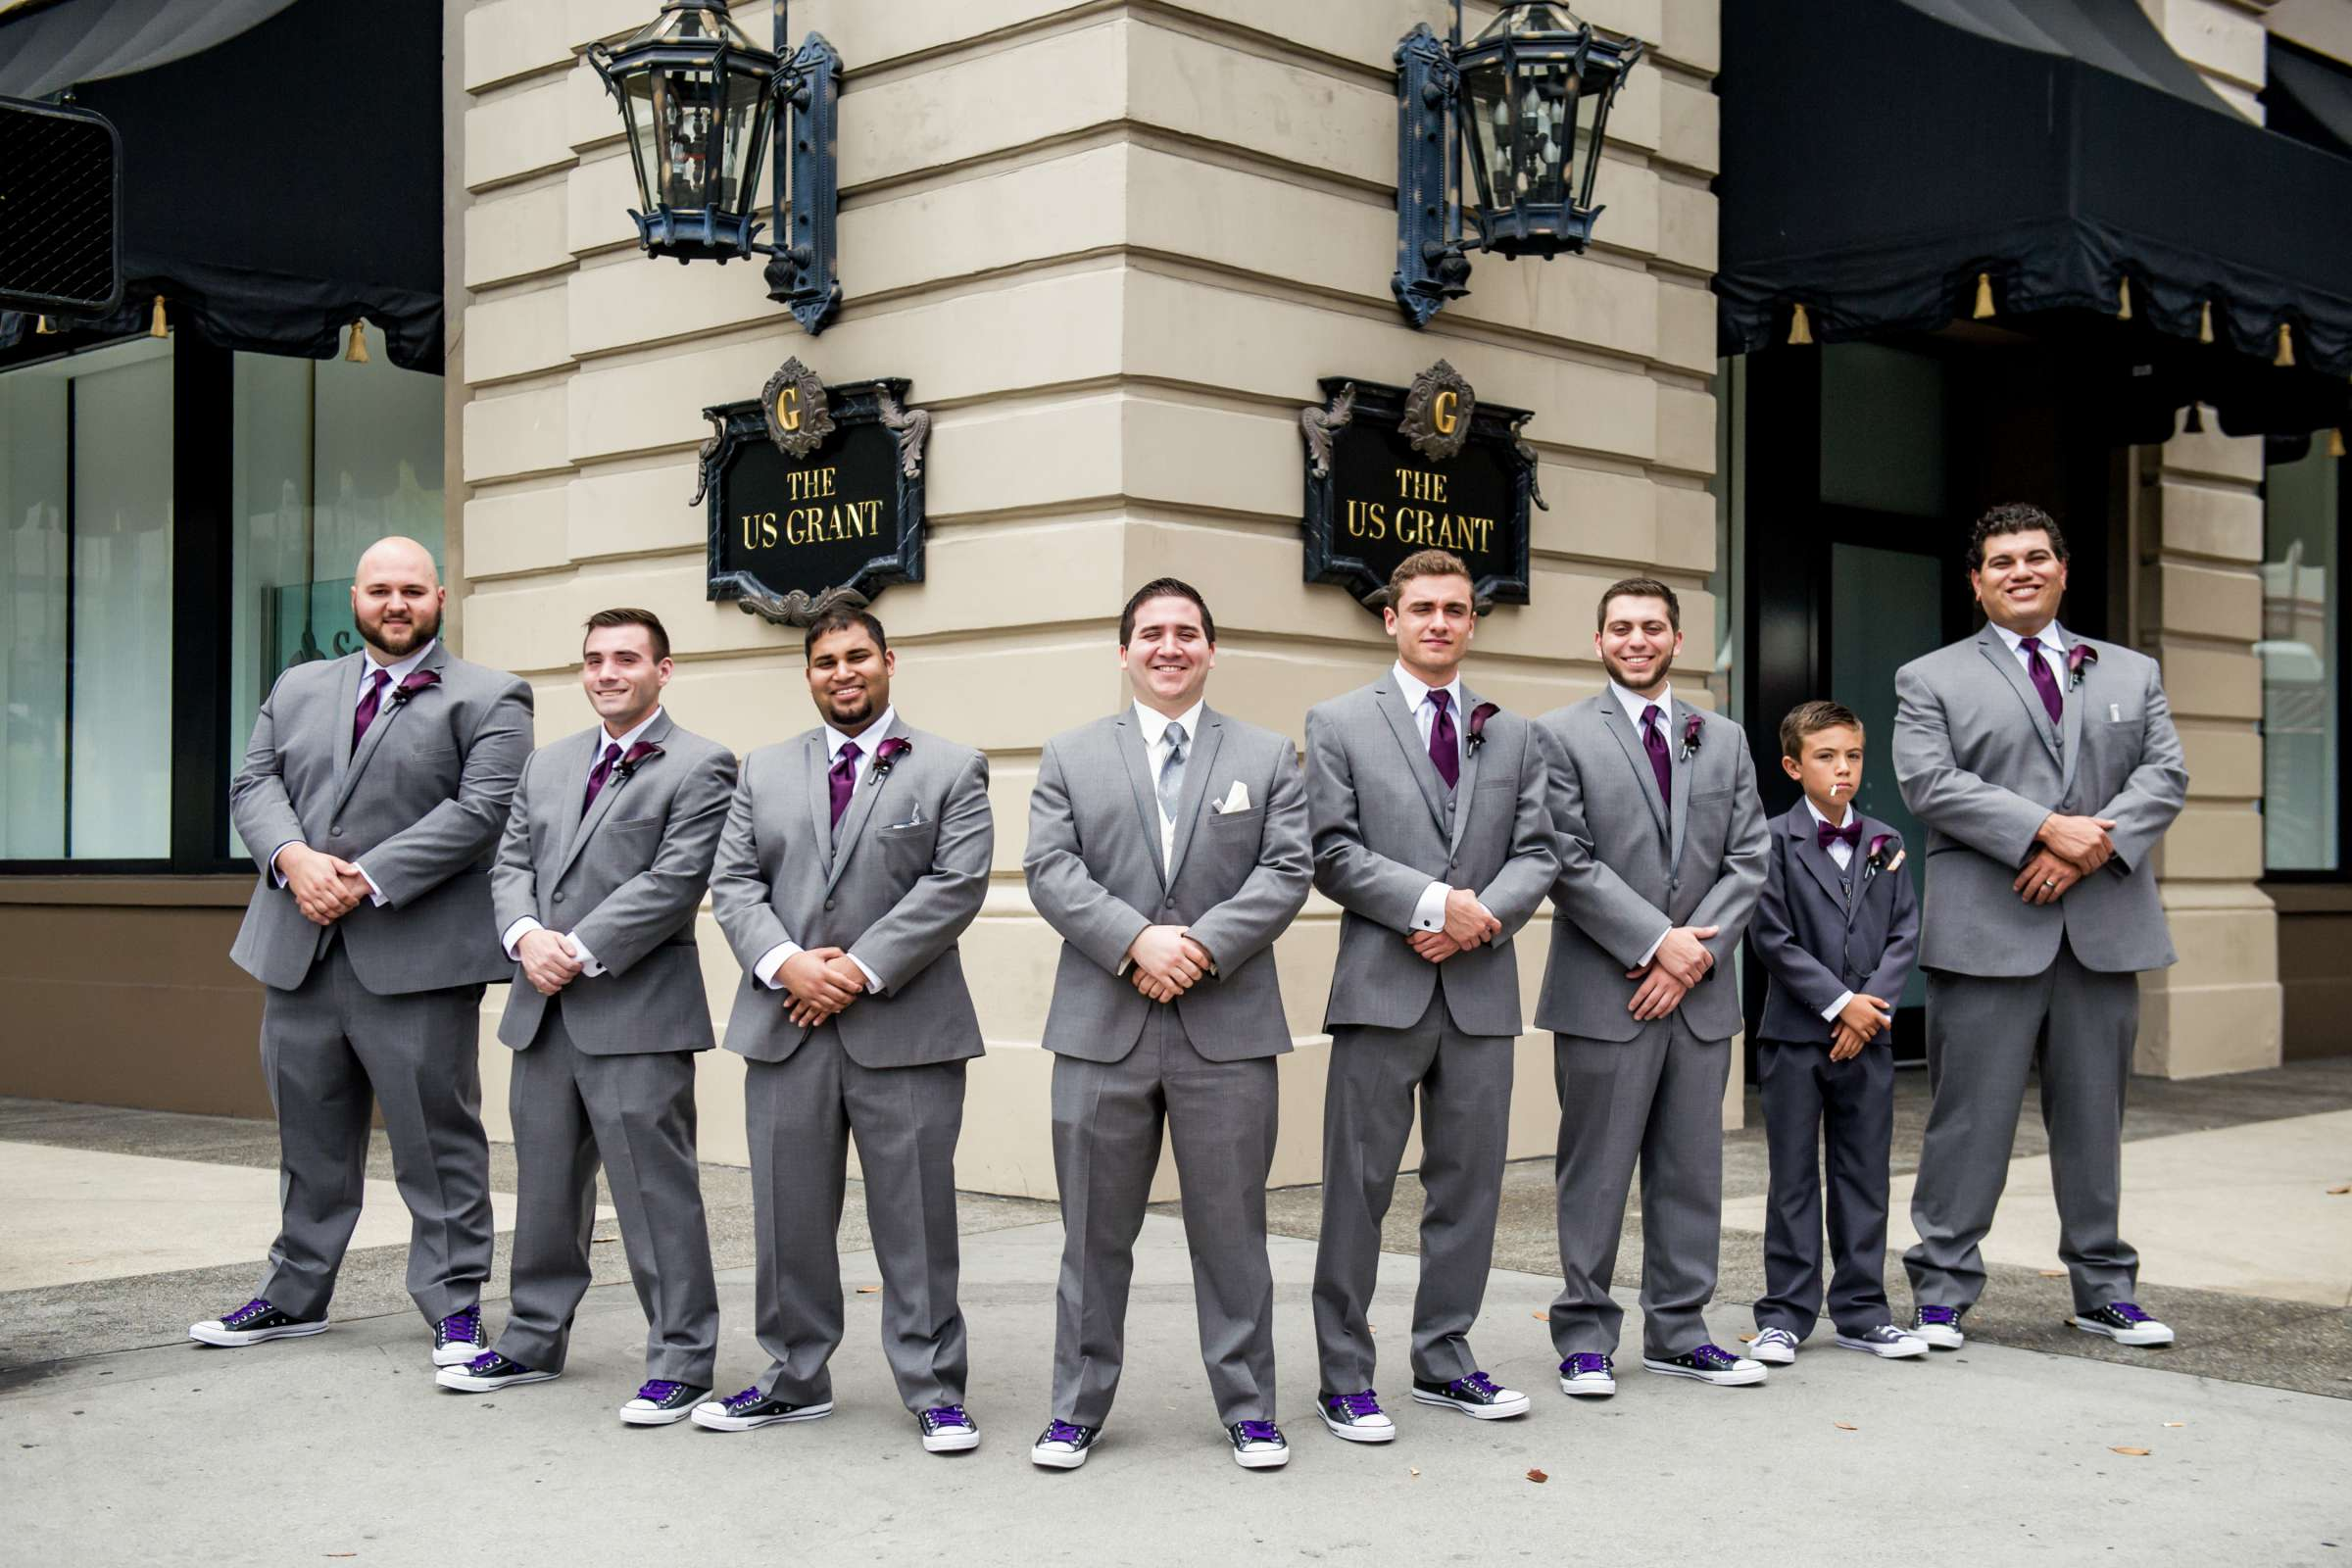 The Prado Wedding coordinated by Victoria Weddings & Events, Melissa and Andrew Wedding Photo #106 by True Photography